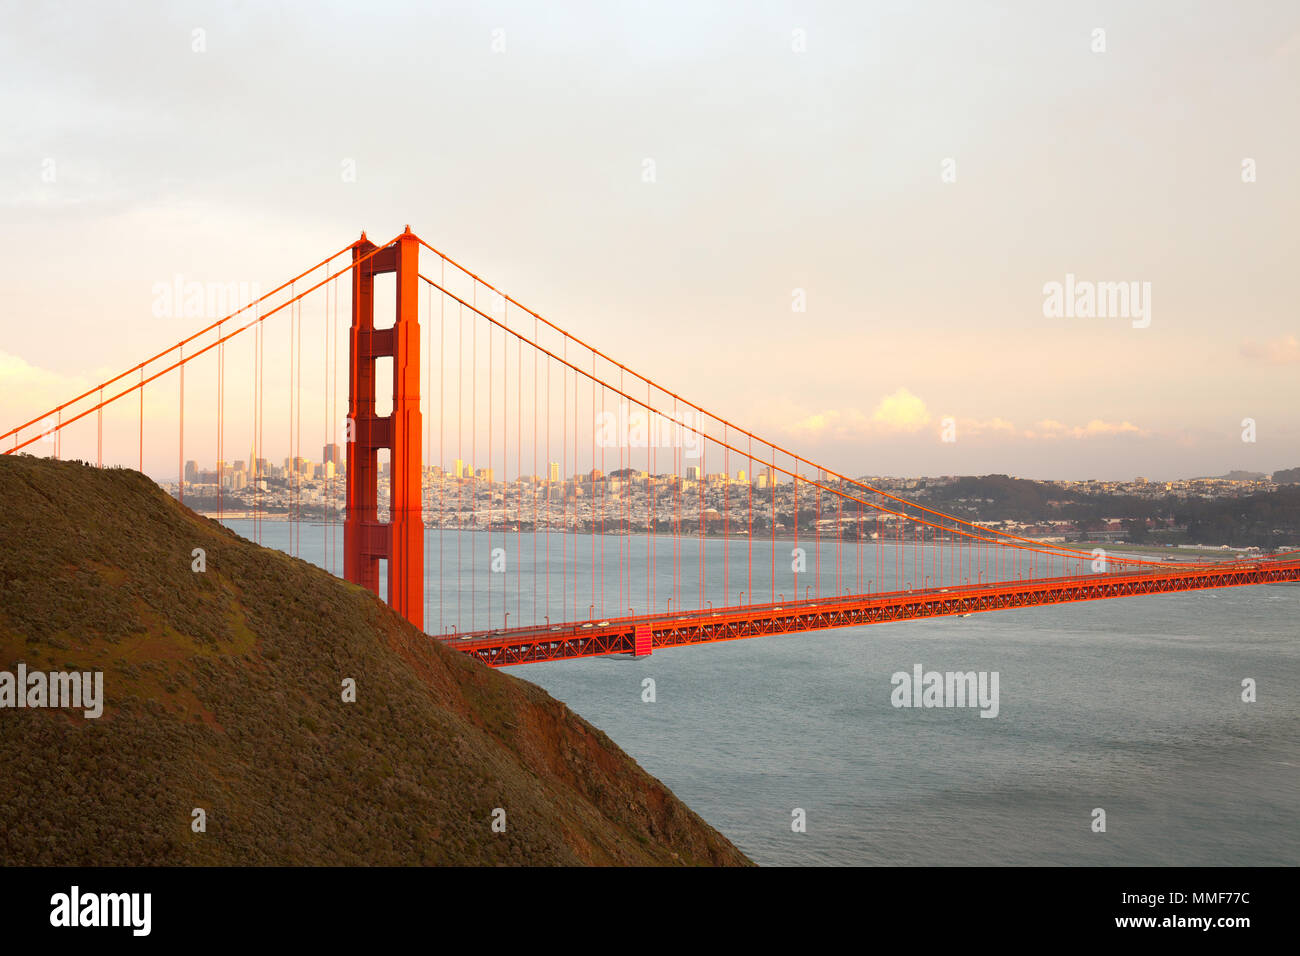 Il Golden Gate Bridge di San Francisco, California, Stati Uniti d'America Immagini Stock